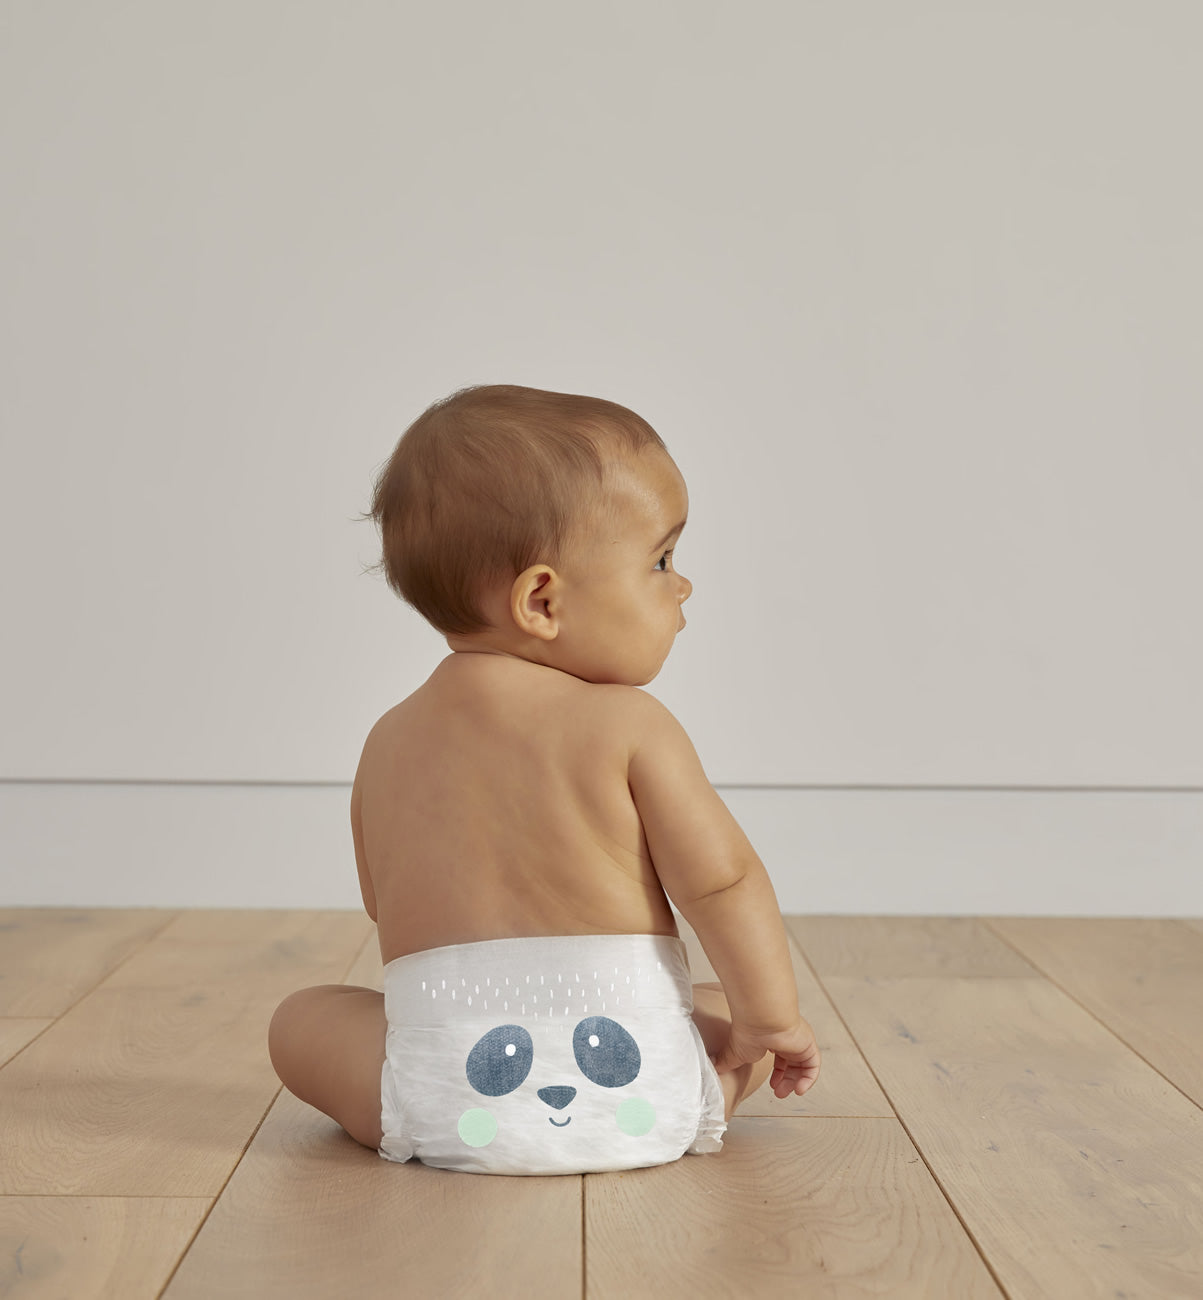 Panda eco nappies senstive skin